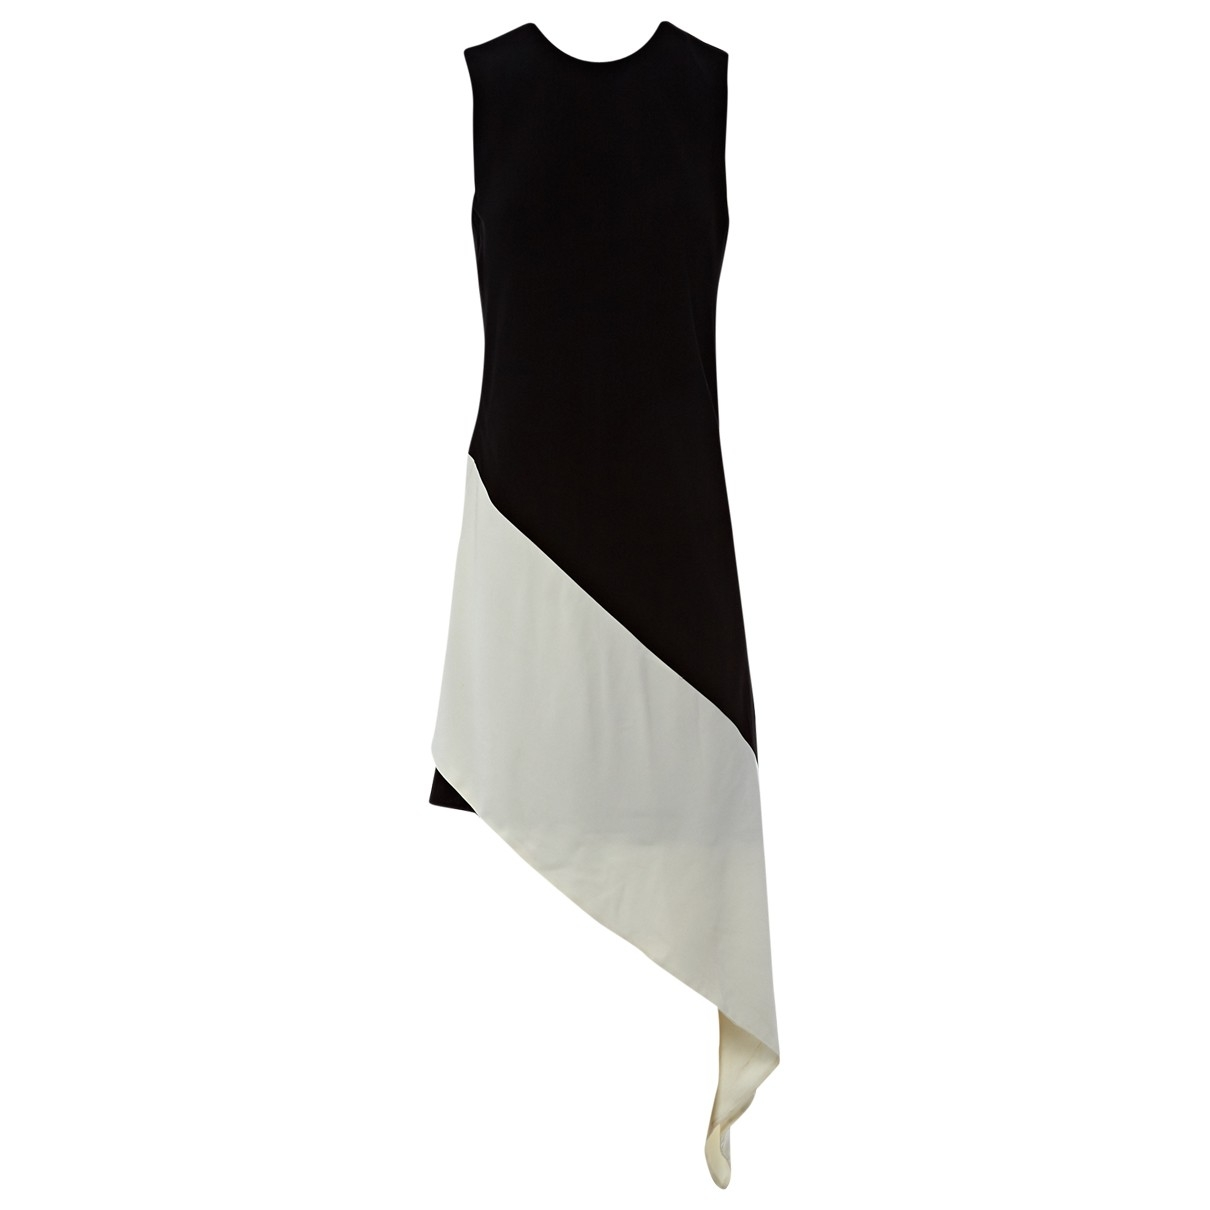 Marni \N Black dress for Women 40 IT